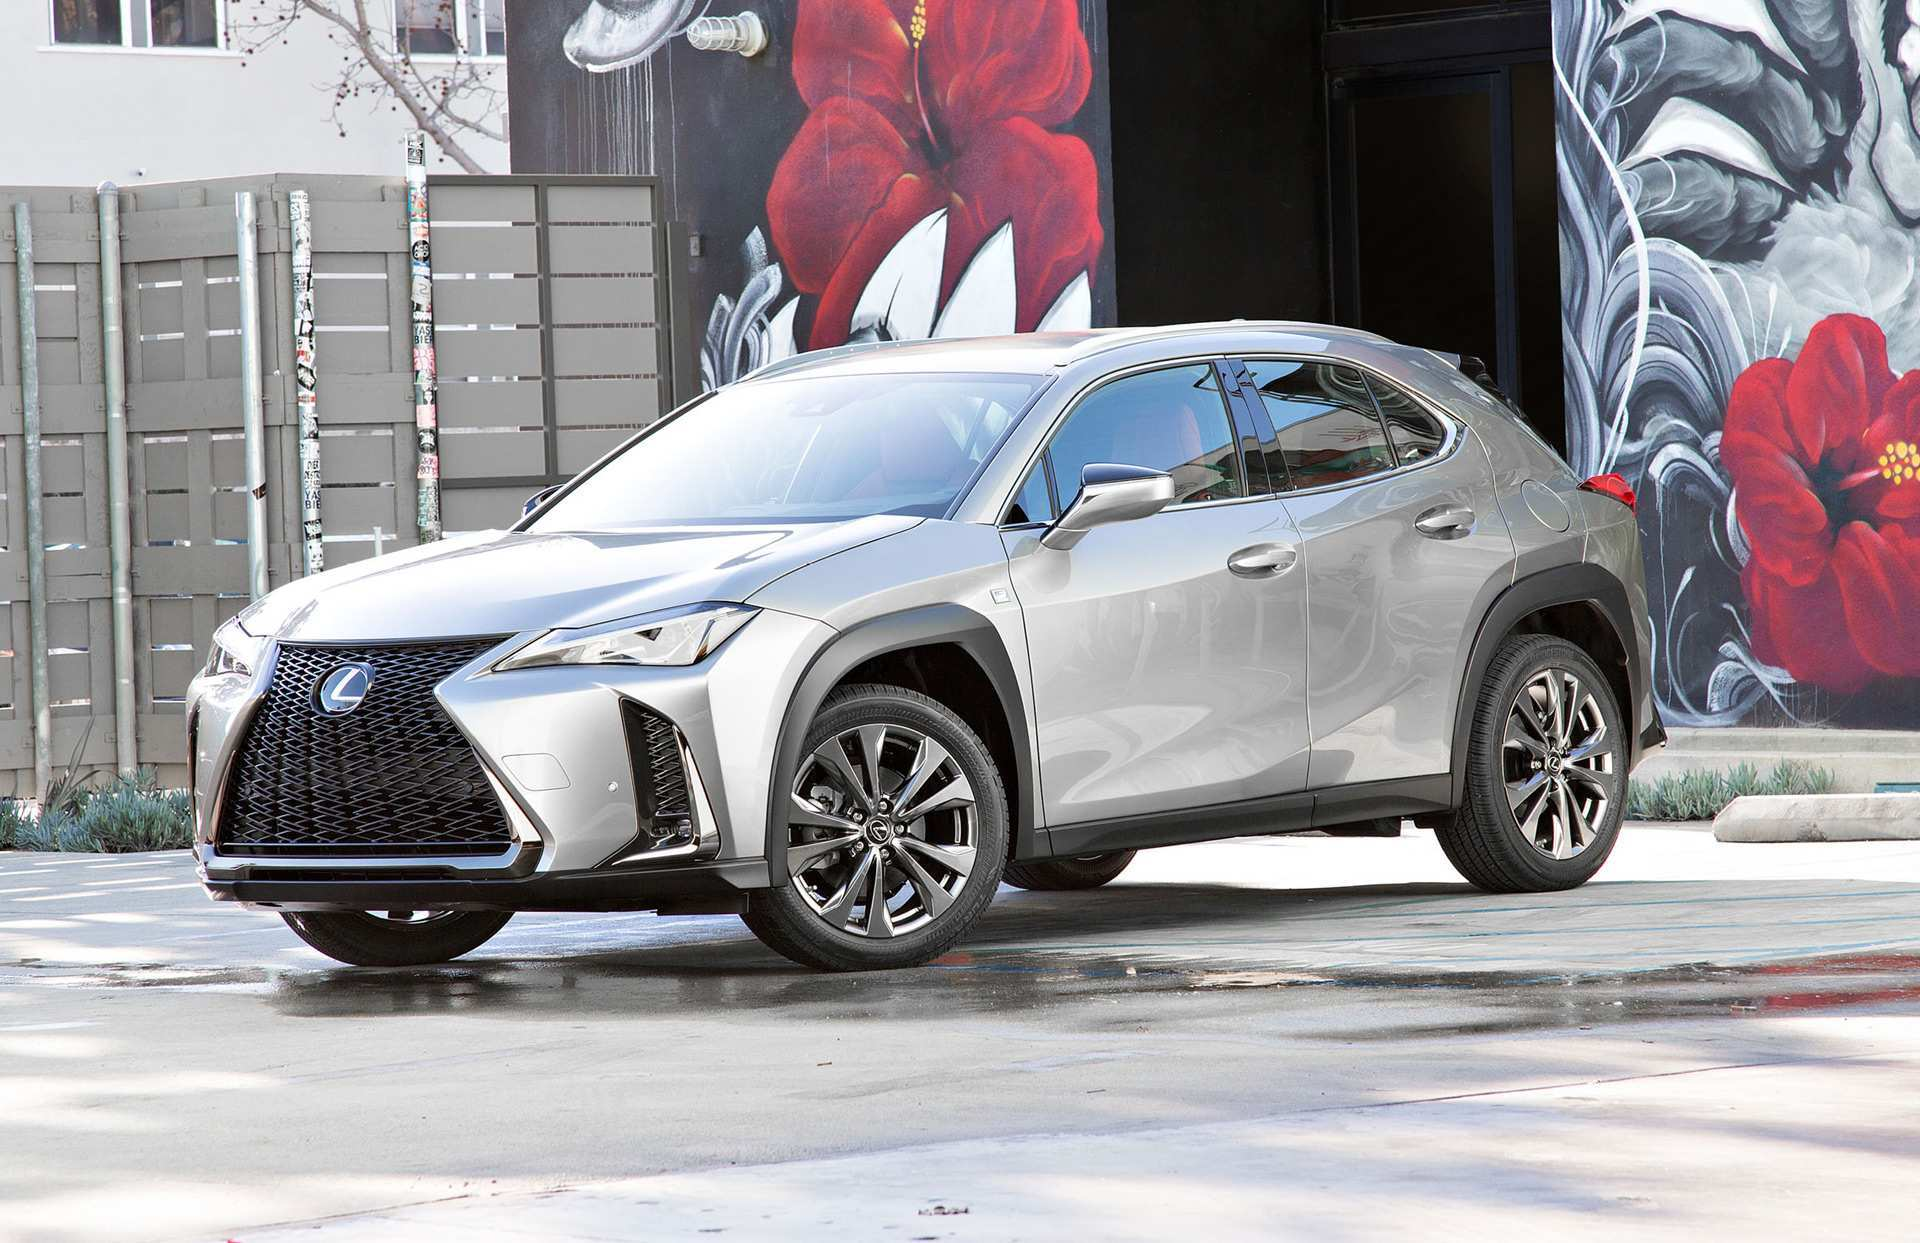 55 New Lexus 2019 Us Redesign And Concept Speed Test with Lexus 2019 Us Redesign And Concept